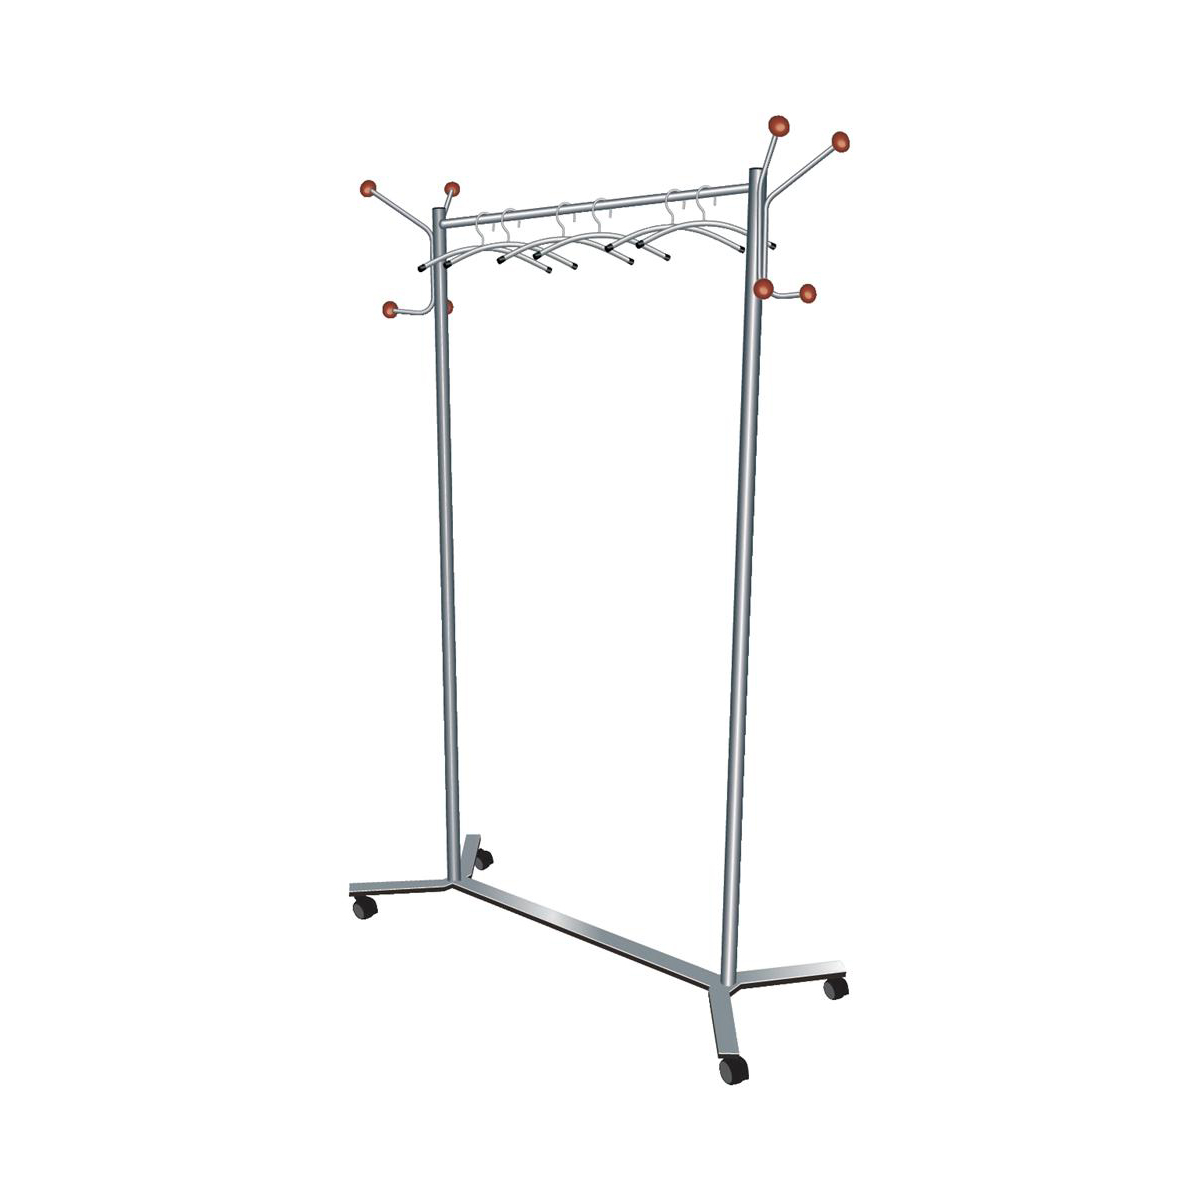 5 Star Facilities Coat Rack Mobile 4 Wheels 4 Pegs 4 Hooks Capacity of 36 Hangers 1175x440x1740mm Silver